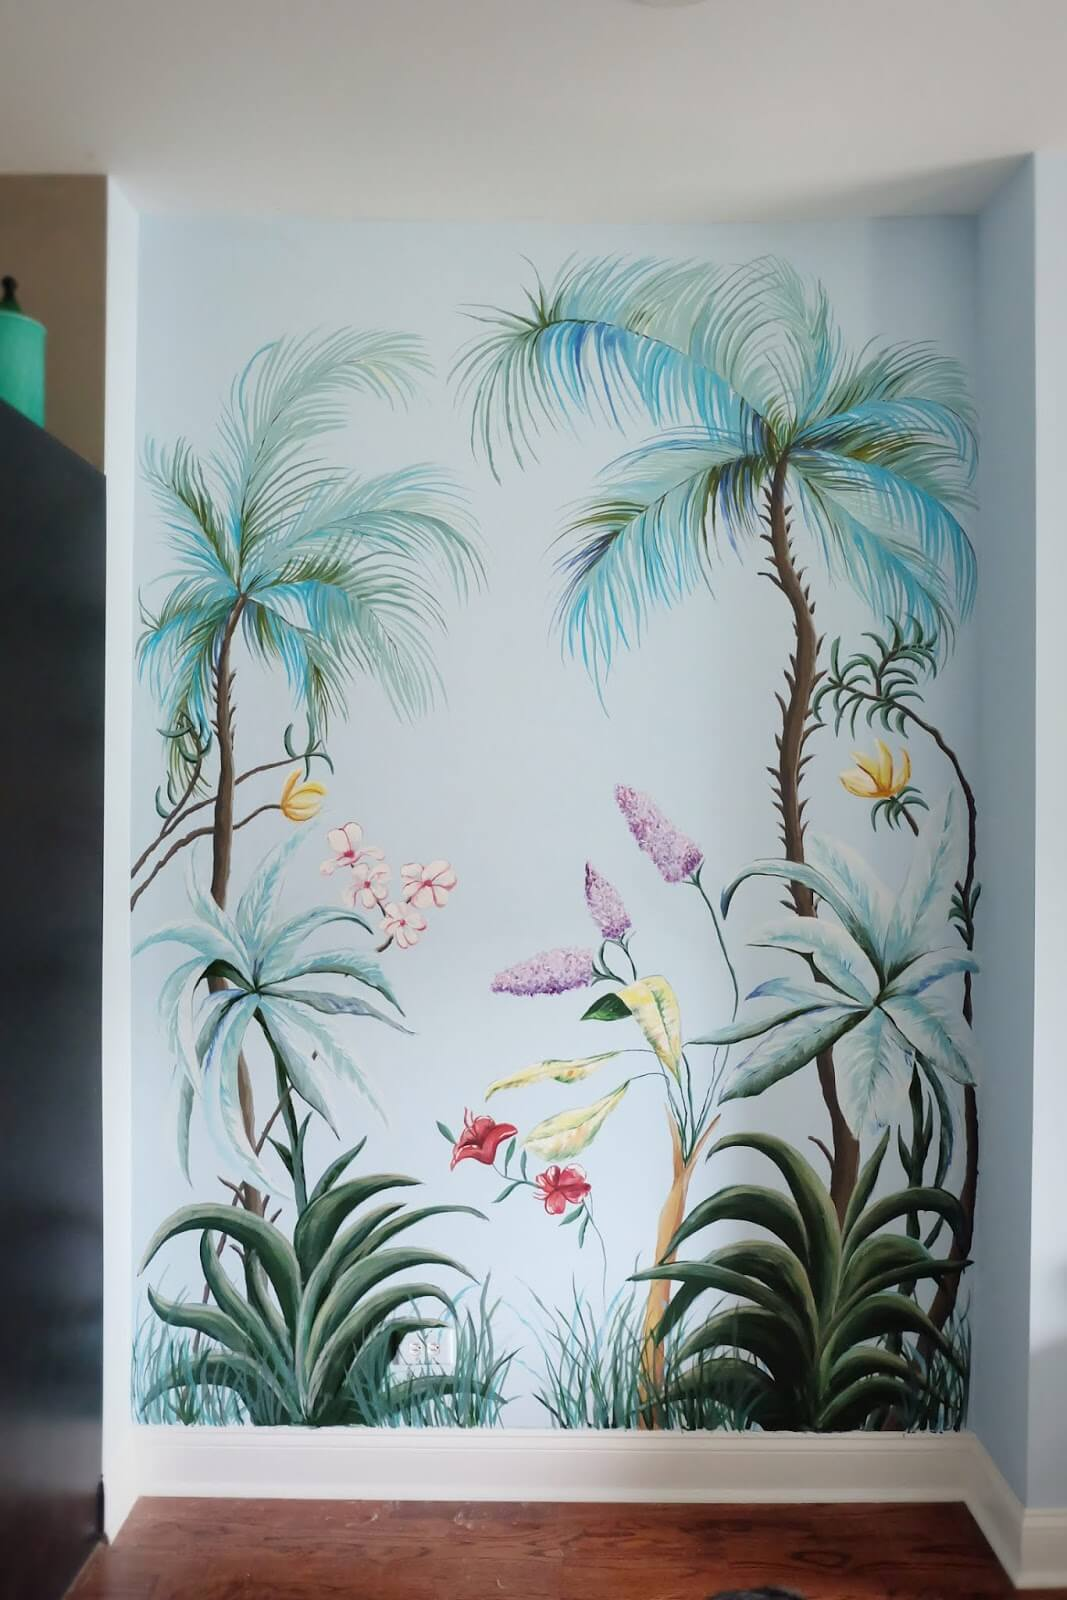 Tropical Flora and Fauna Accent Wall Art Mural